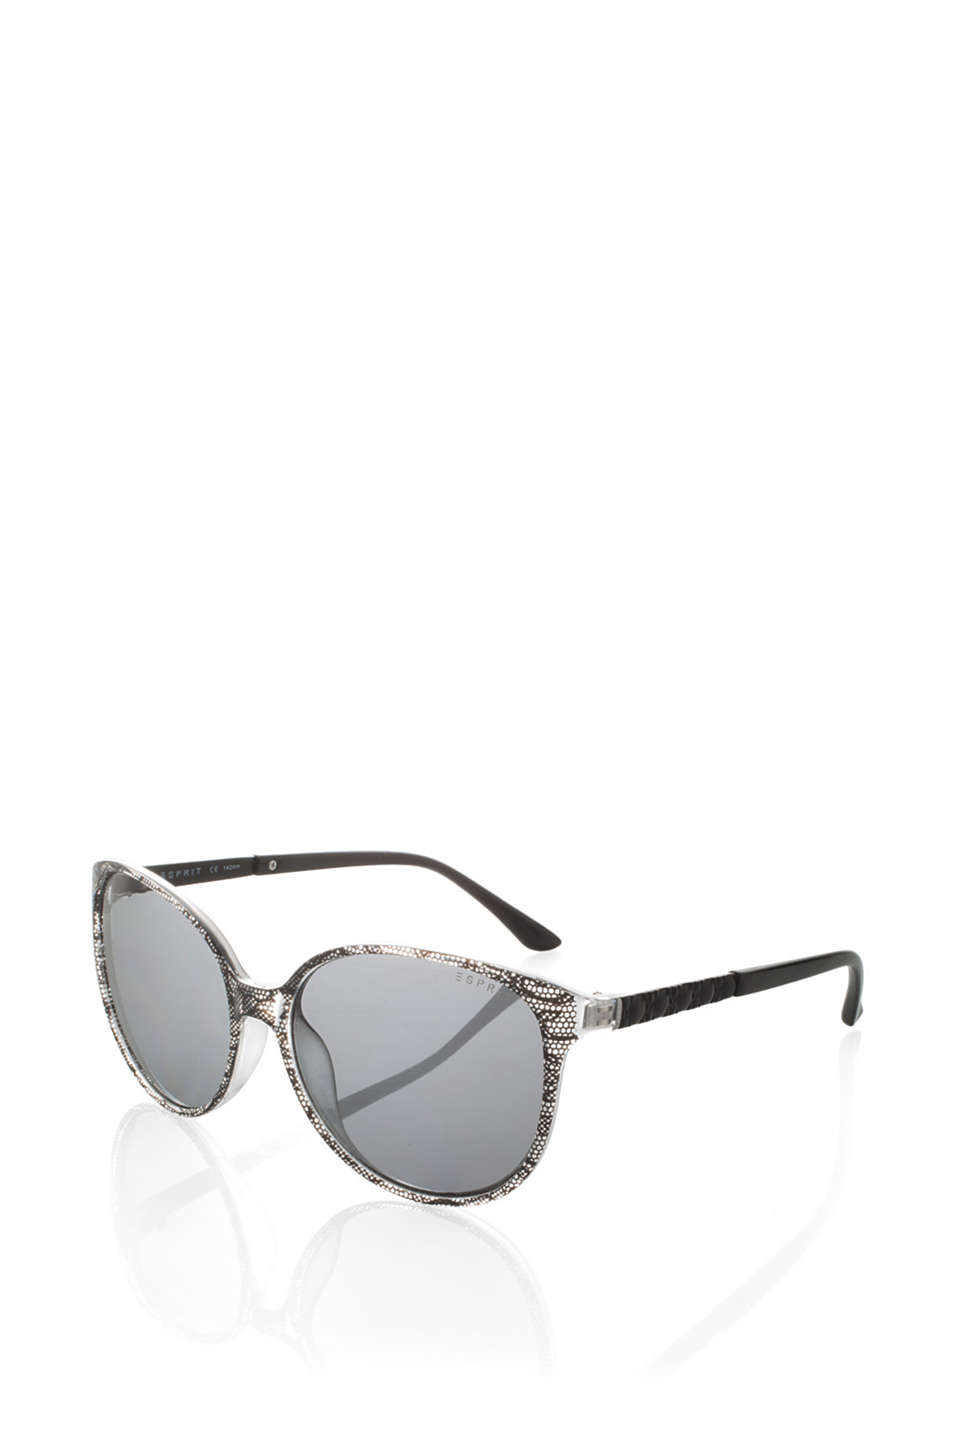 Sunglasses with graduated colour and metal details on the temples